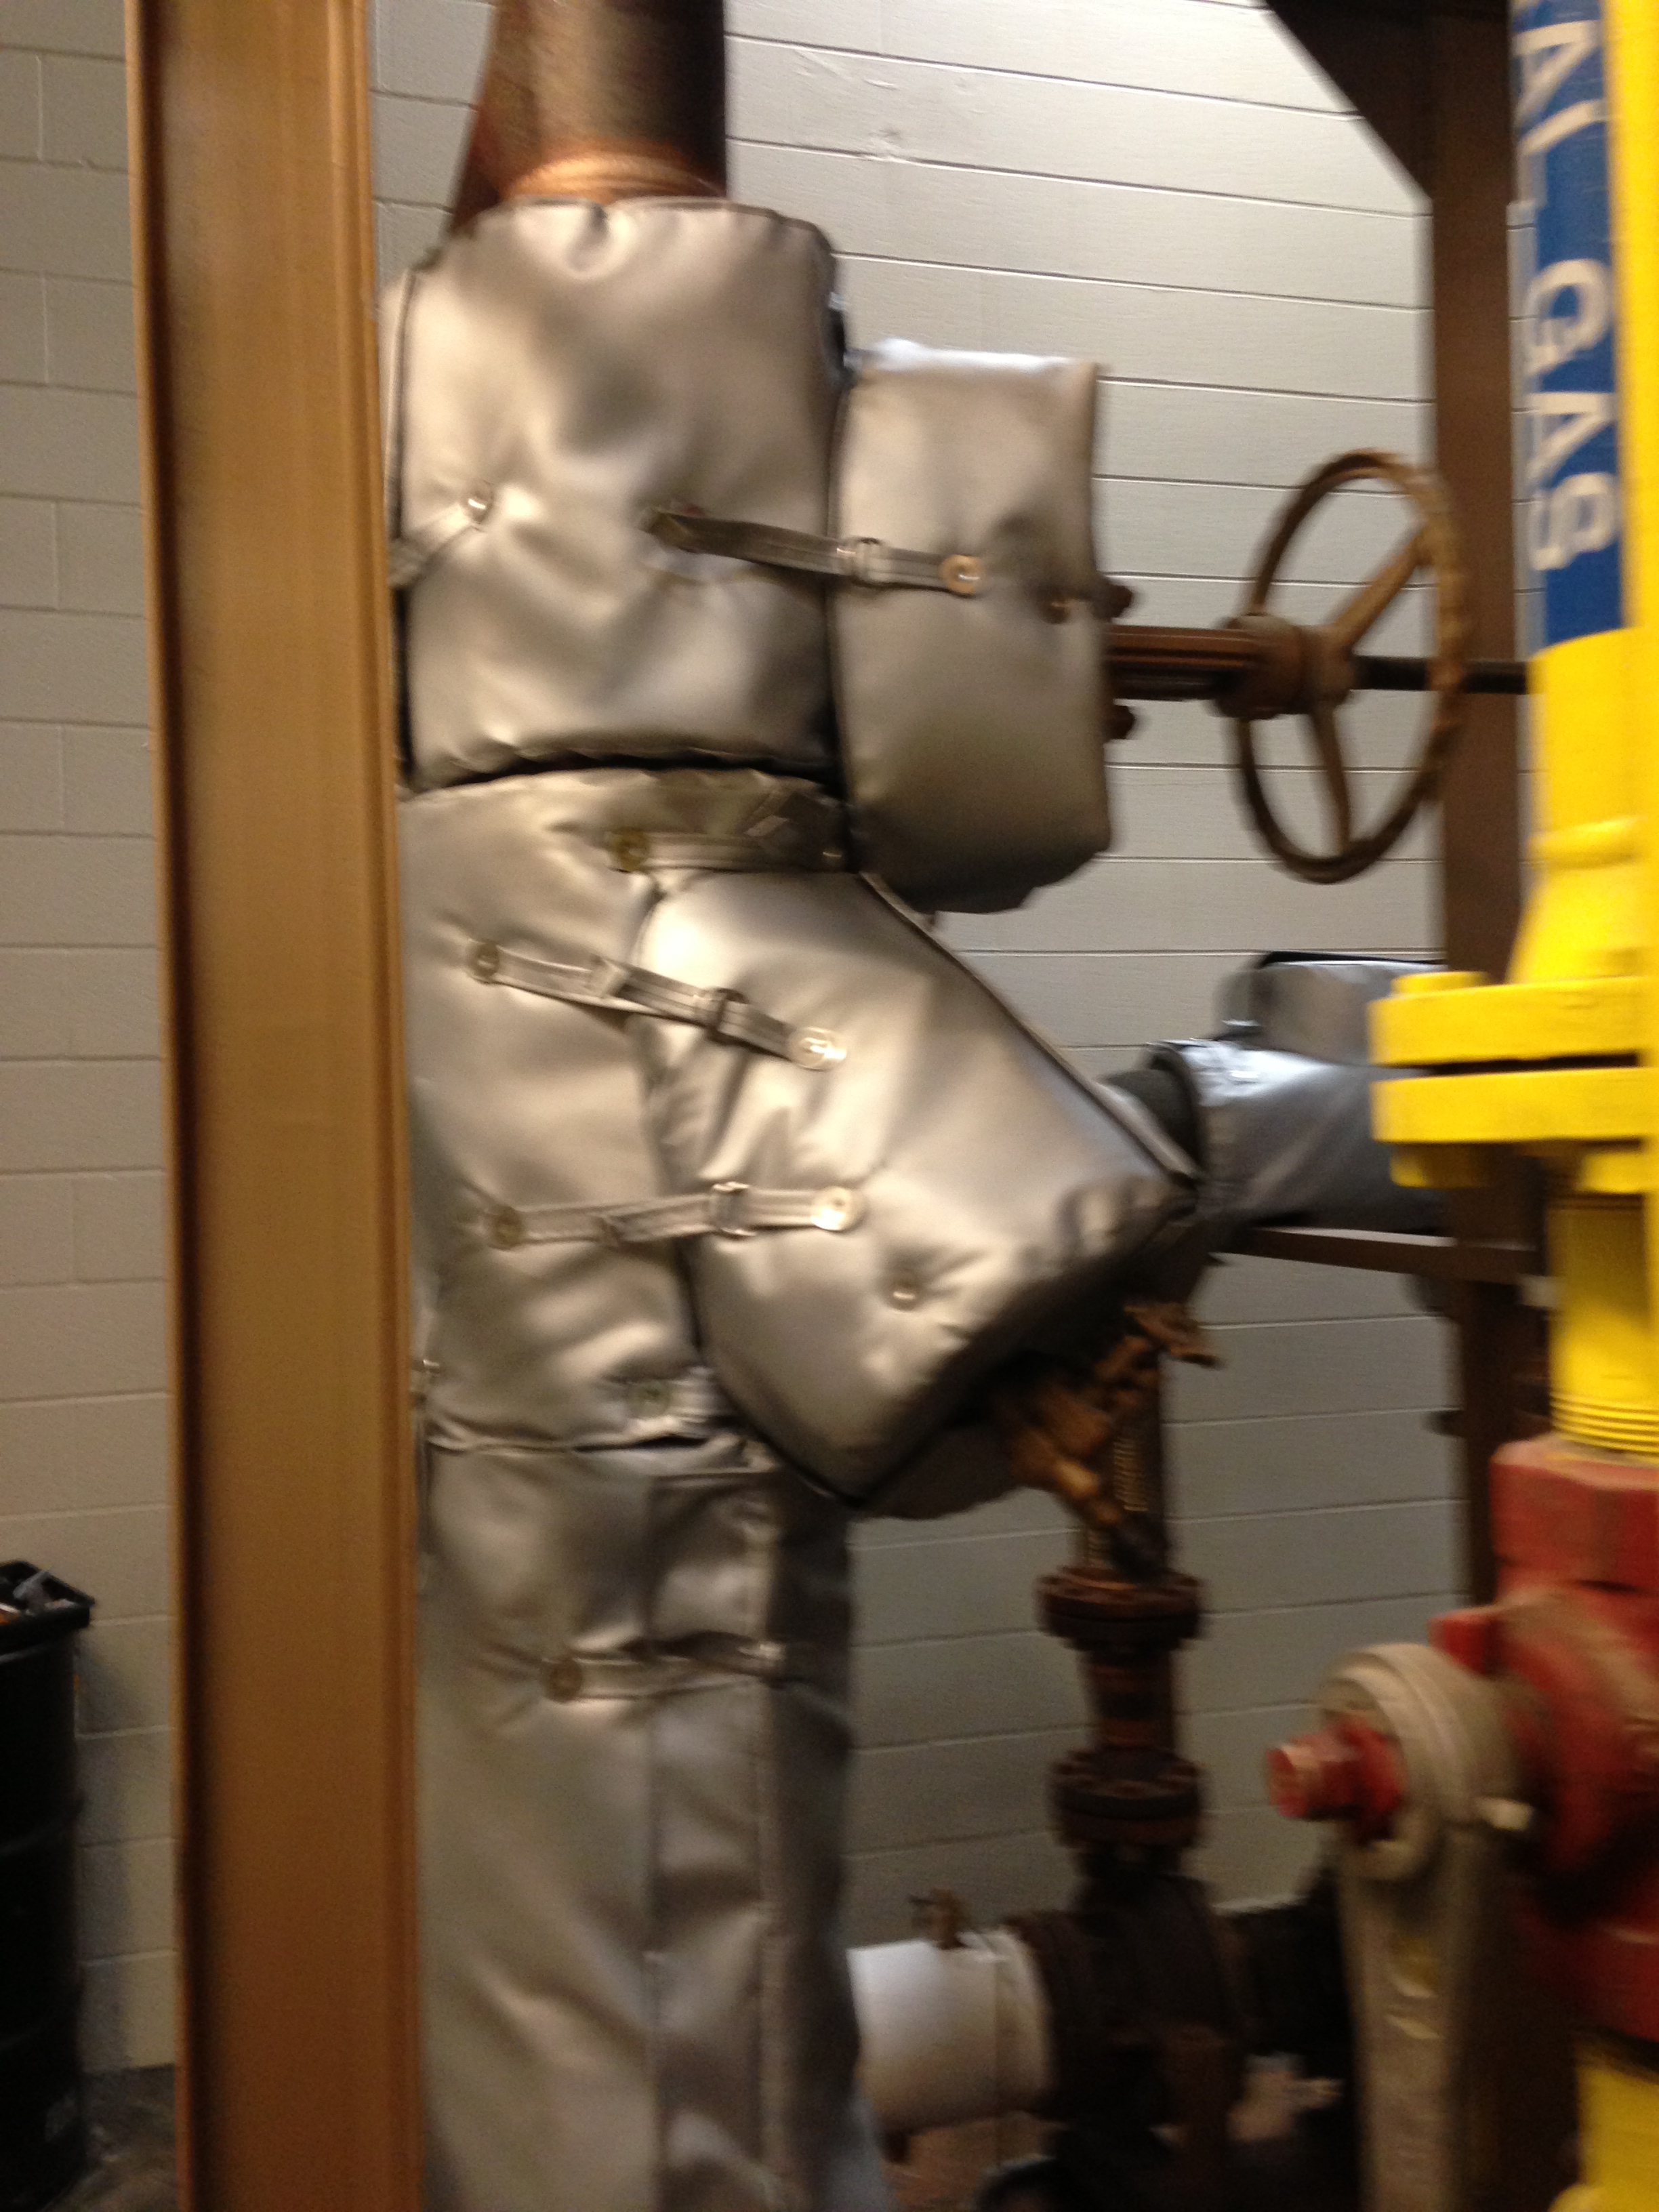 Removable Insulation Blankets For Valve Strainer And File Pipe 2